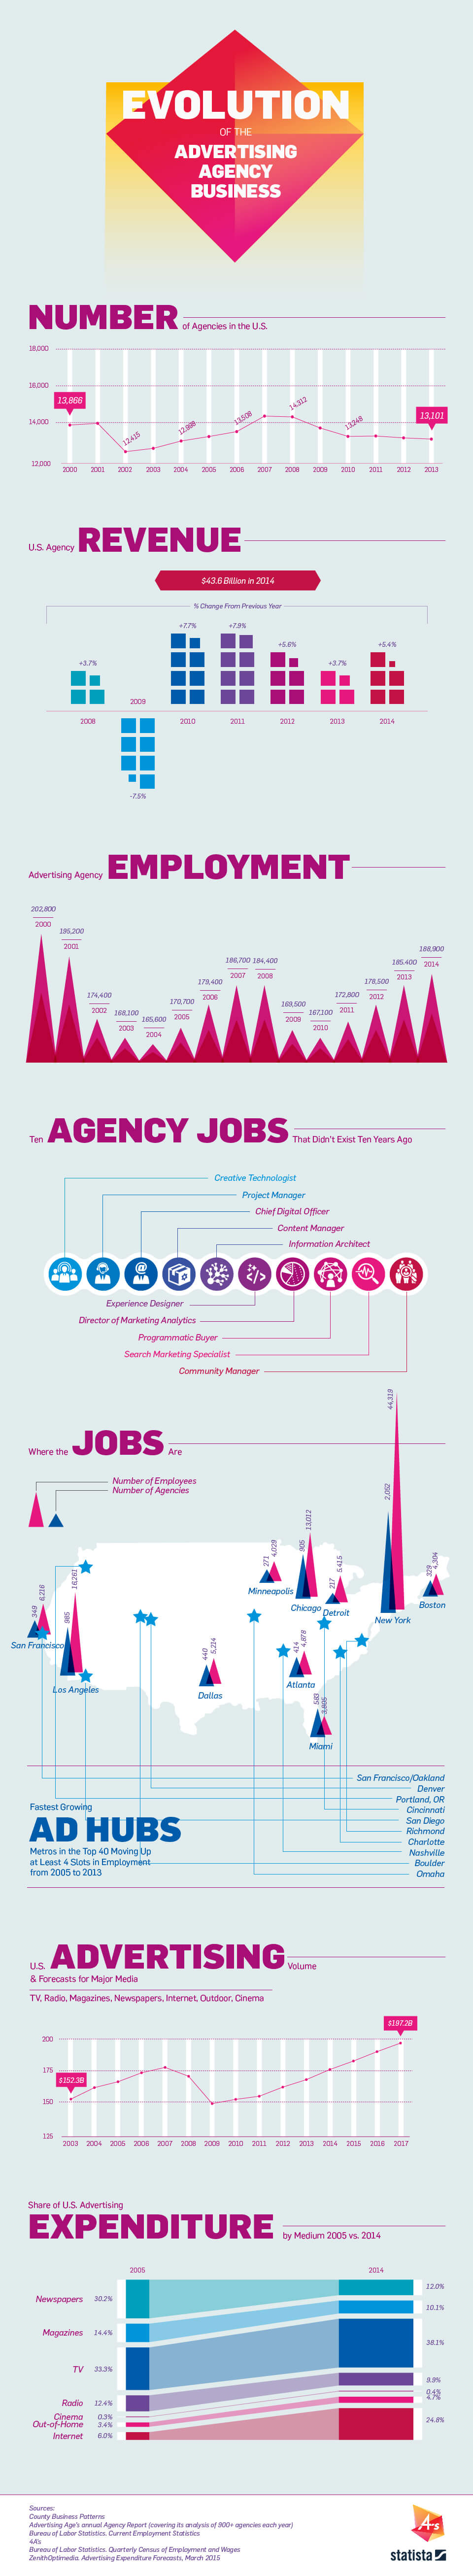 Infographic: Evolution of the Advertising Agency Business   Statista